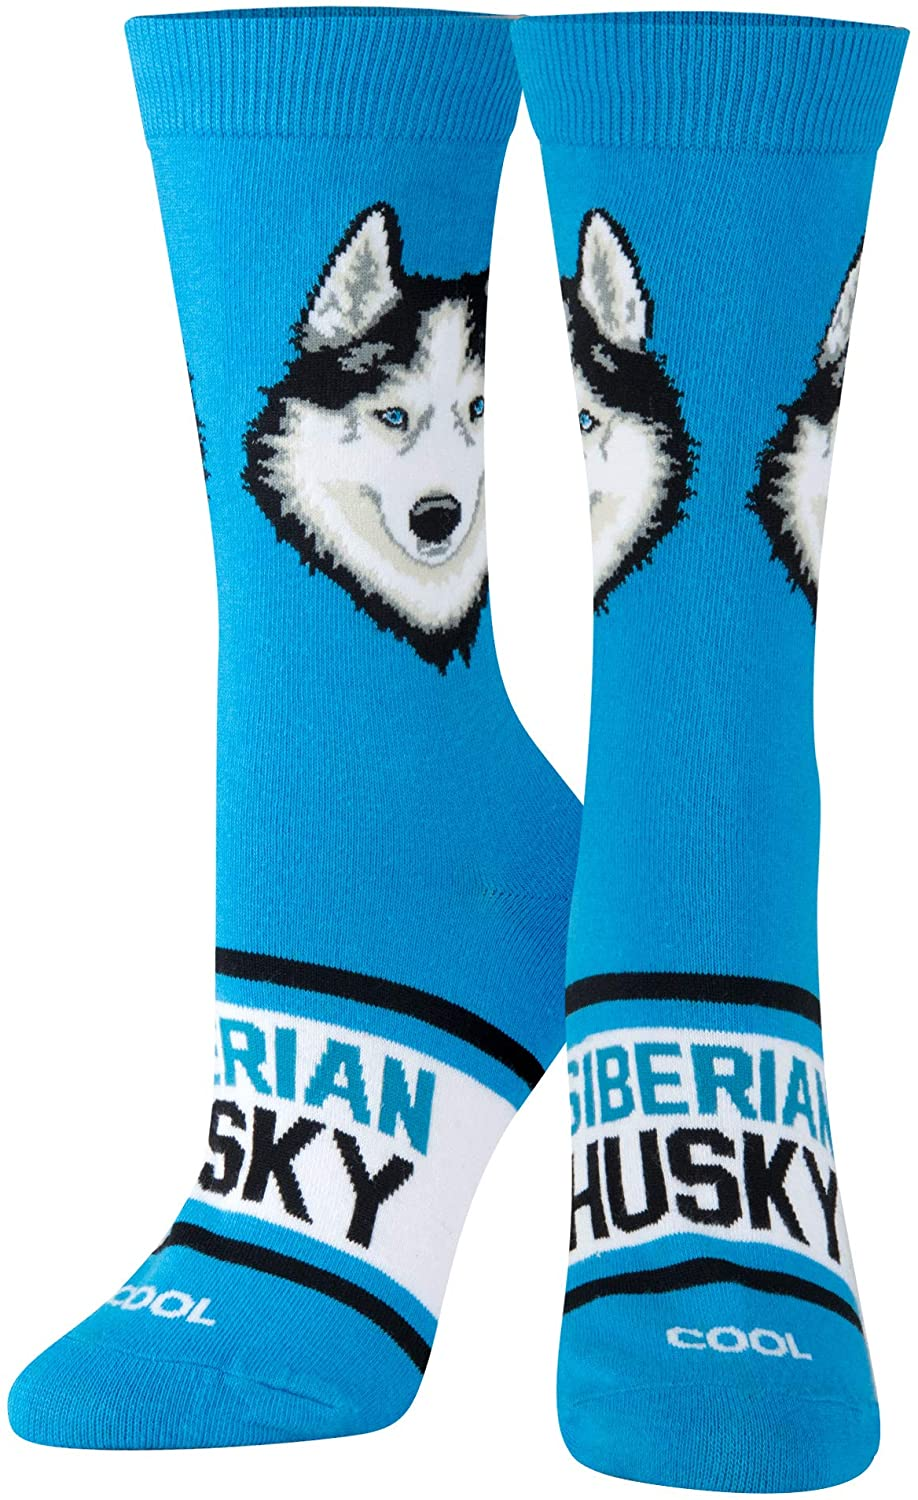 Cool Socks, Women's, Animals, Dogs and Puppies, Crew, Novelty Funny Silly Cute